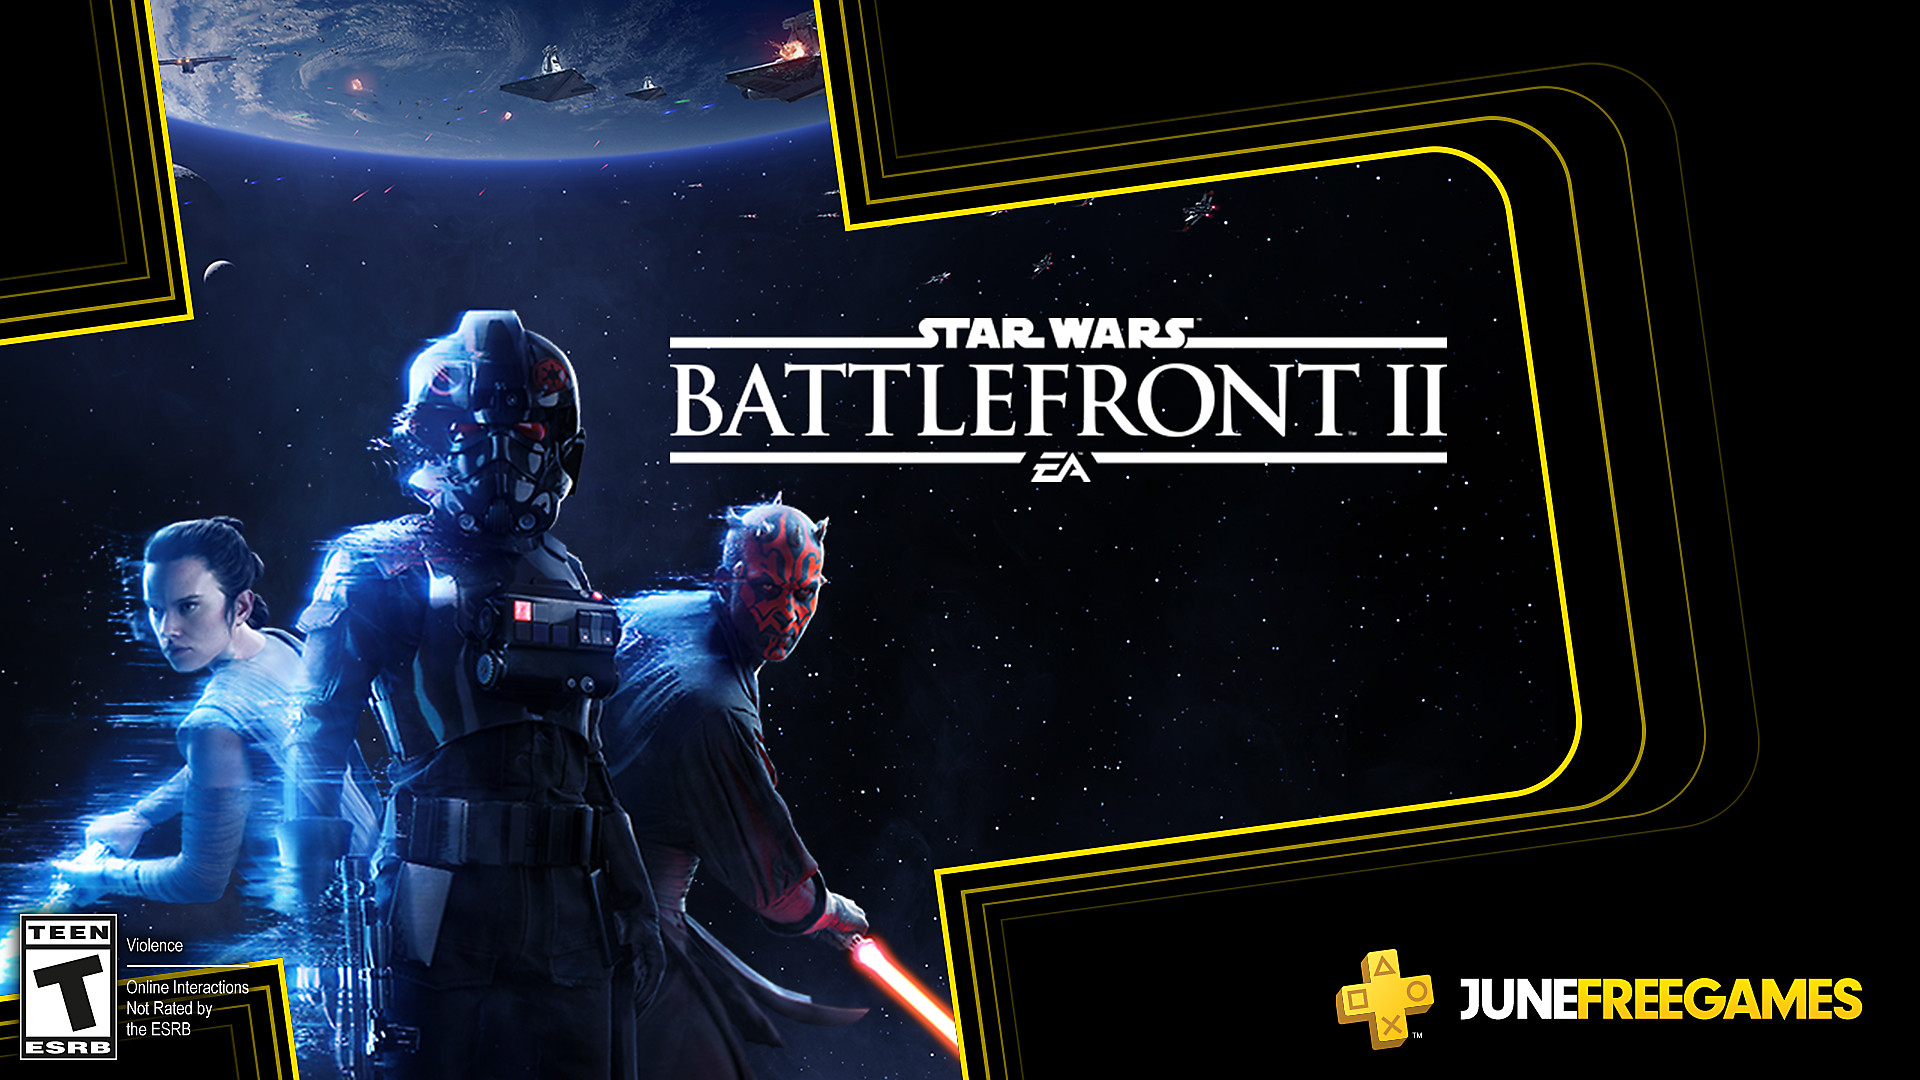 Click here to get Star Wars Battlefront II free from the PlayStation Store for PlayStation Plus members